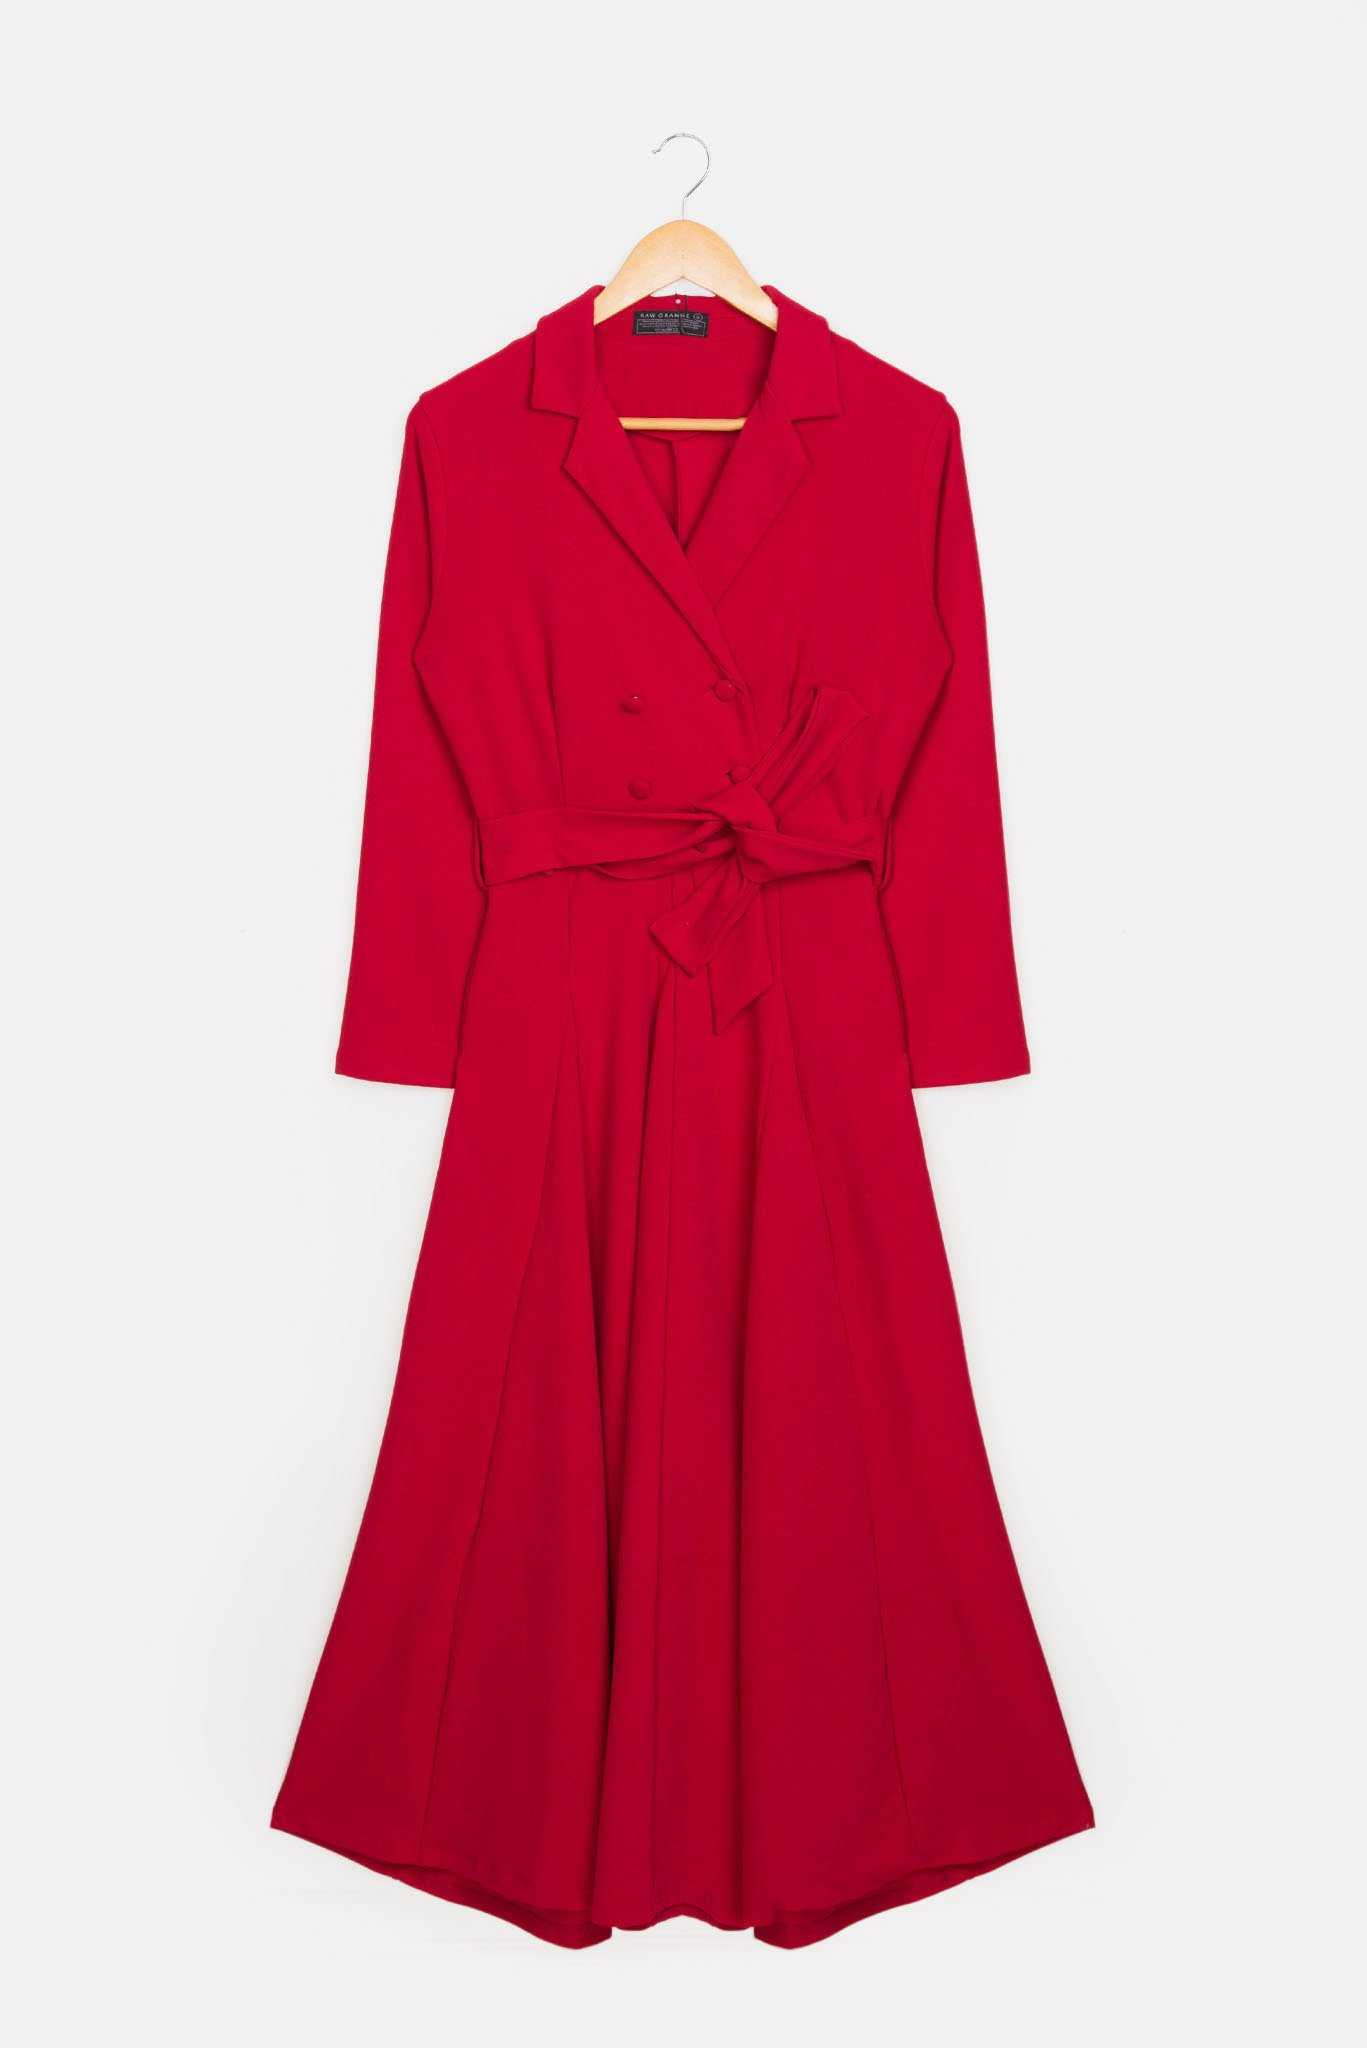 Trench Dress - Red | Raw Orange